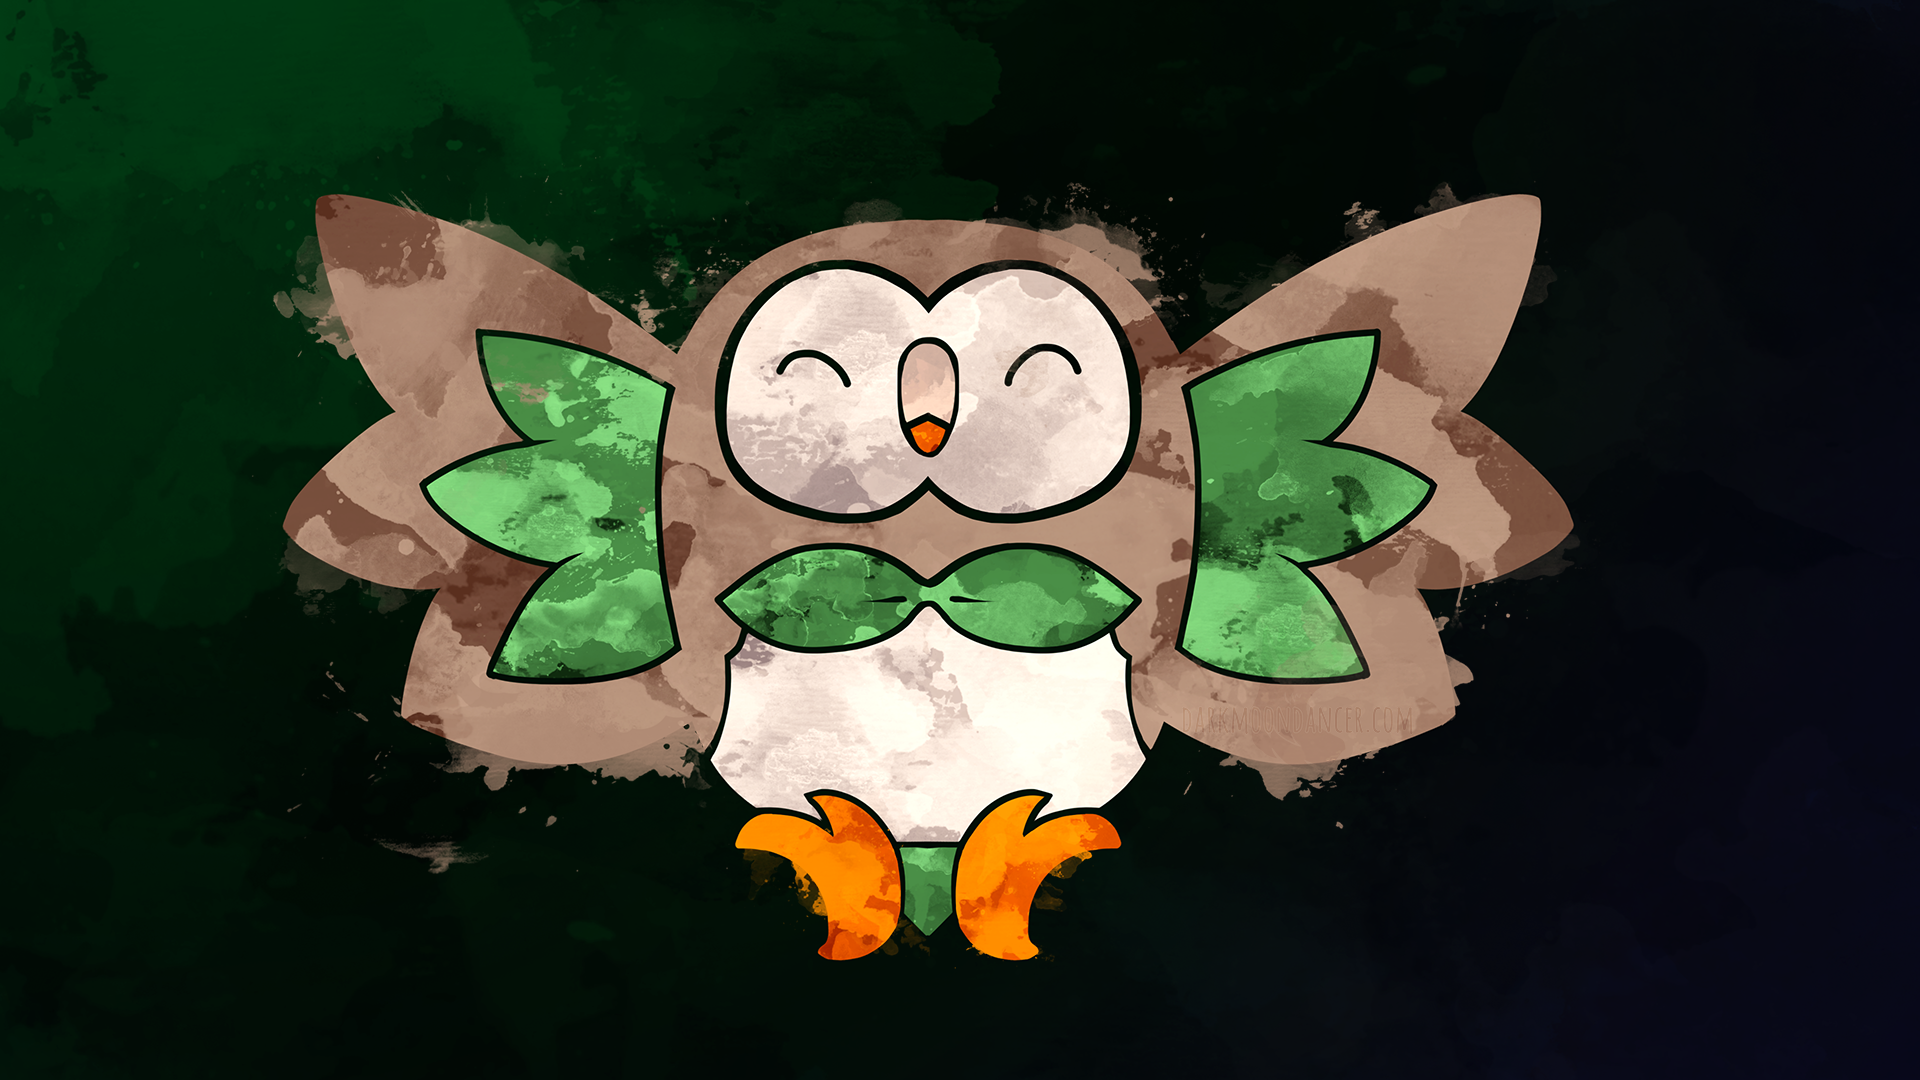 SUMO - Rowlet 1920x1080.png